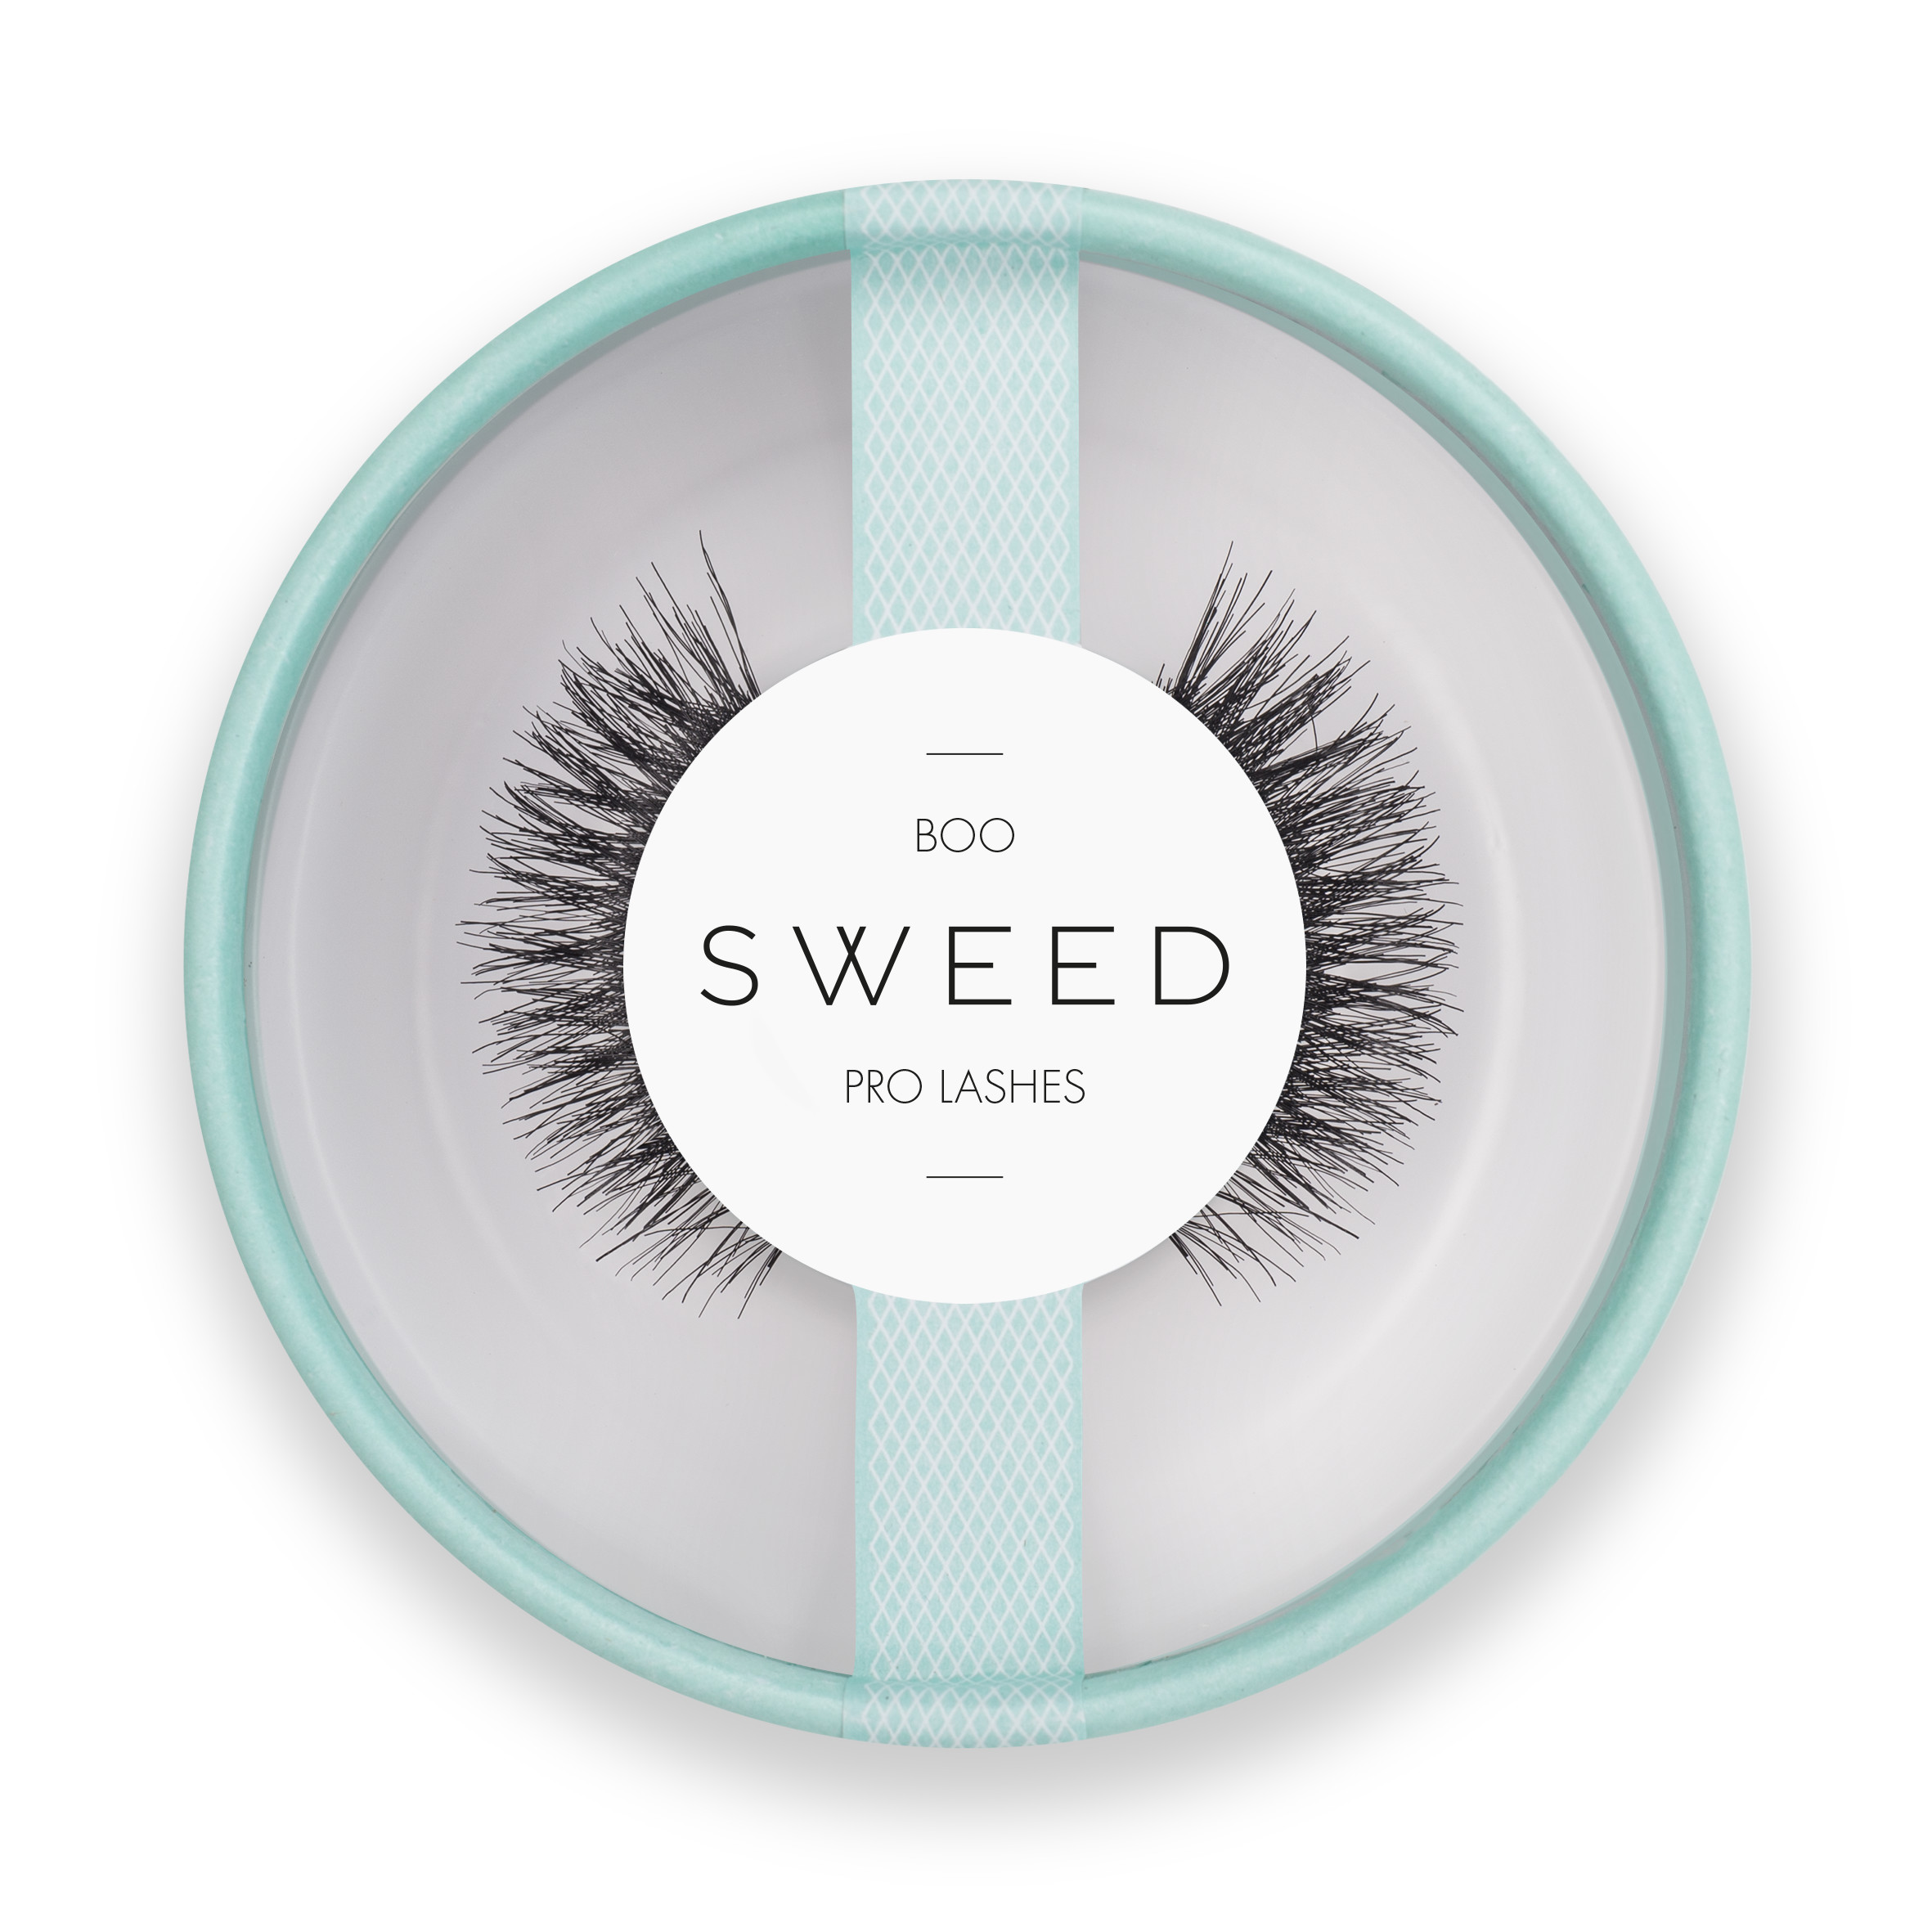 Sweed False Lashes Boo